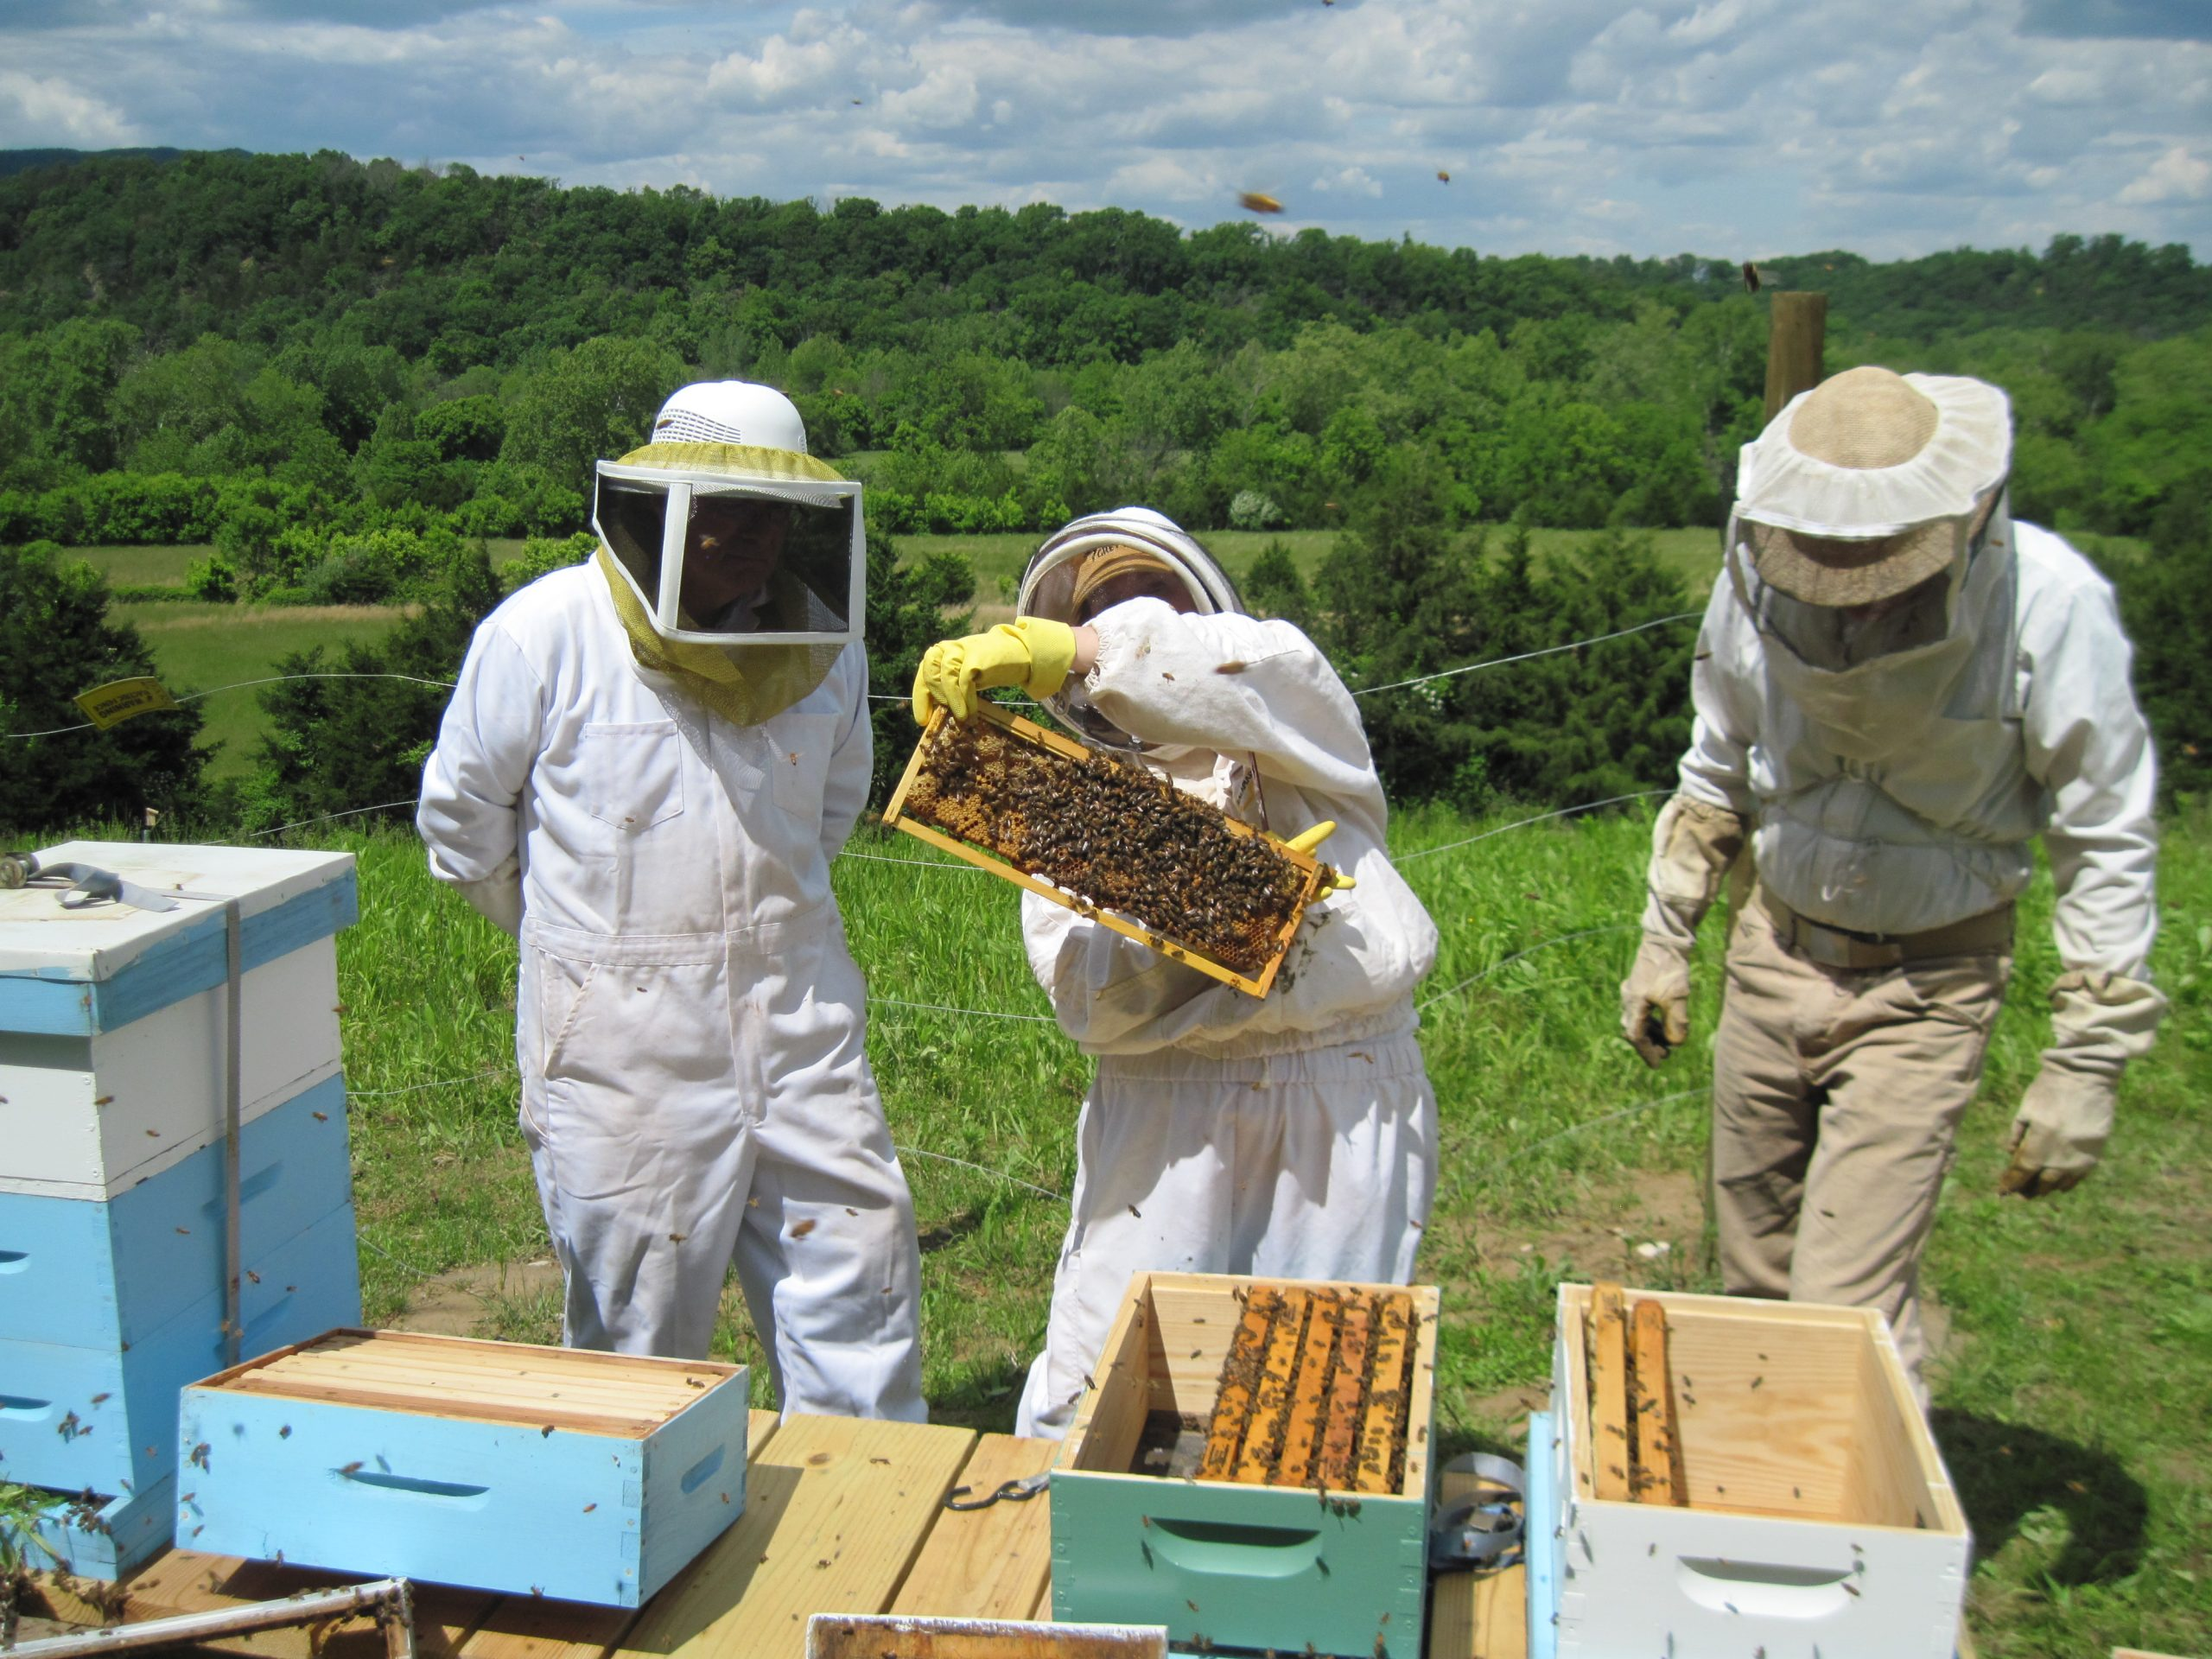 Three people working on bee hives